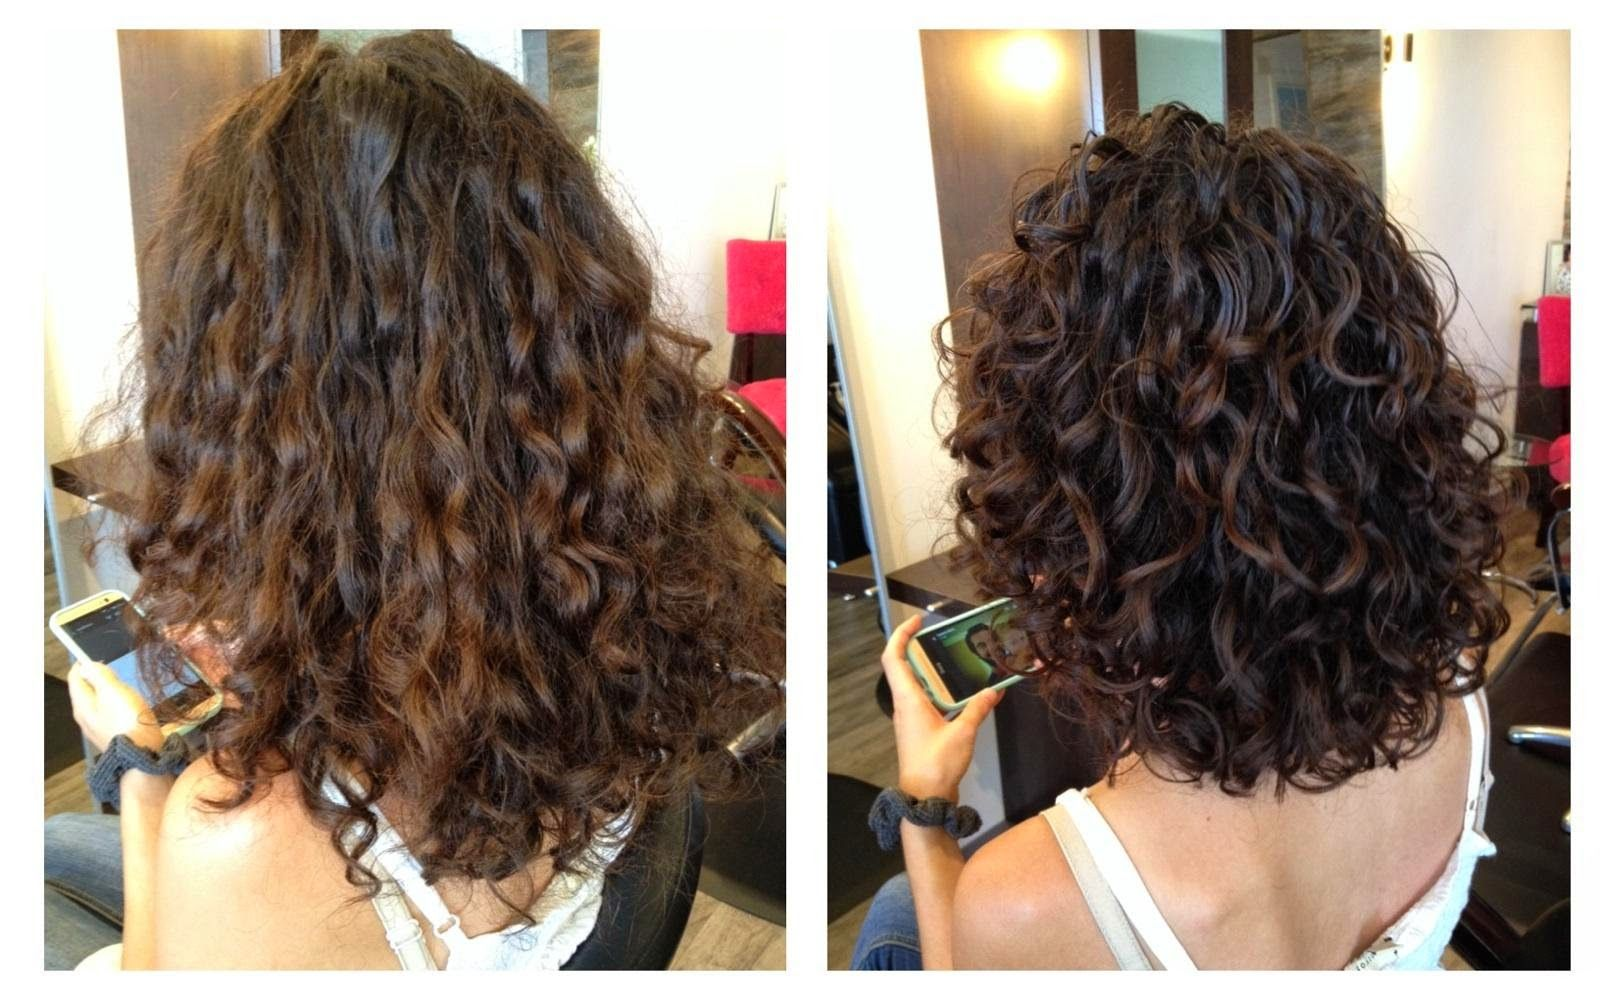 Another day another deva cut iuve never gone this short before